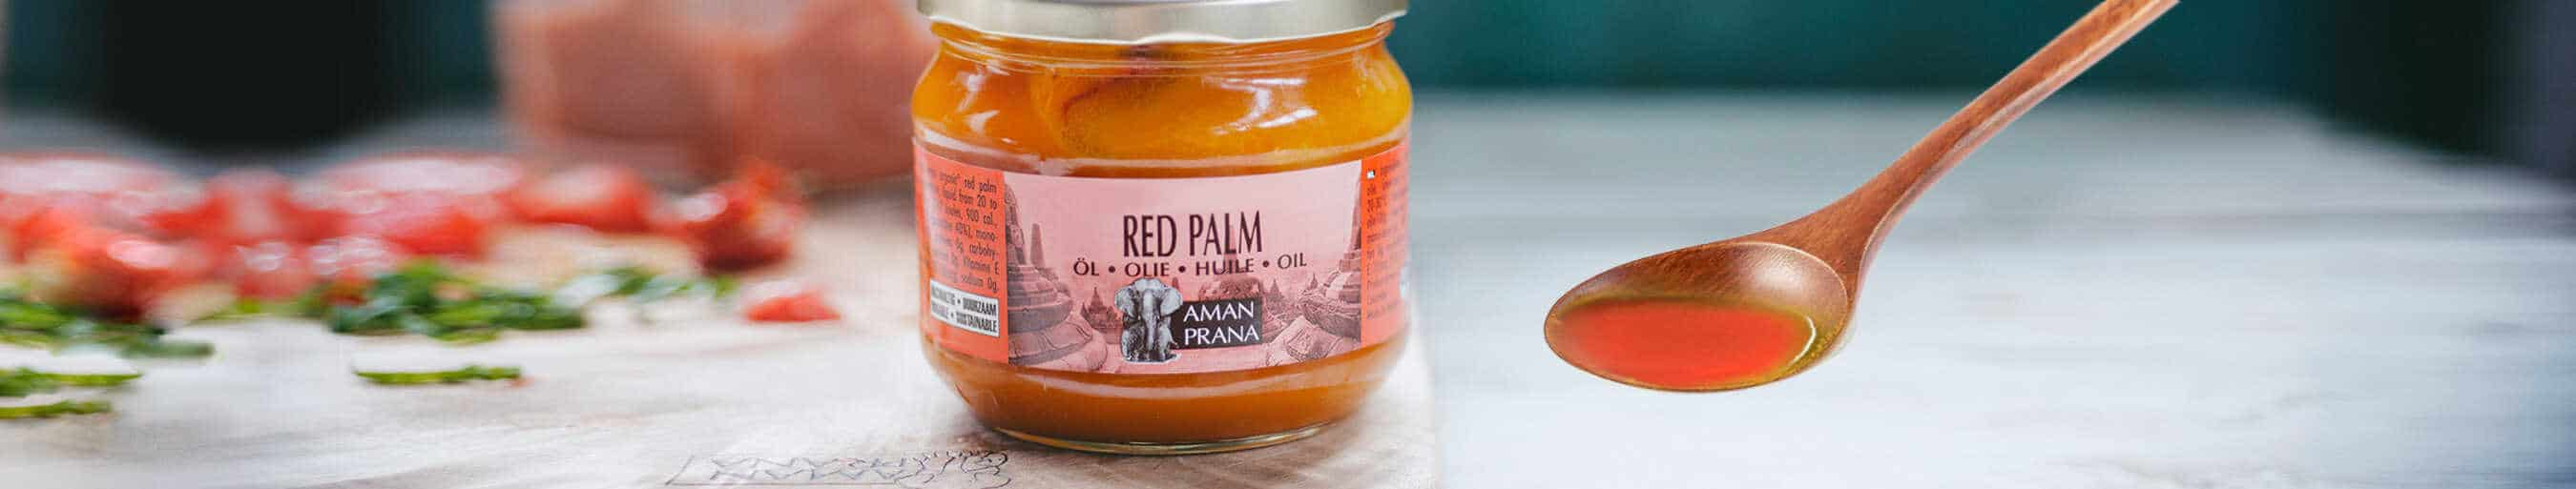 Red Palm Oil from Amanprana: Sustainable and Certified Organic